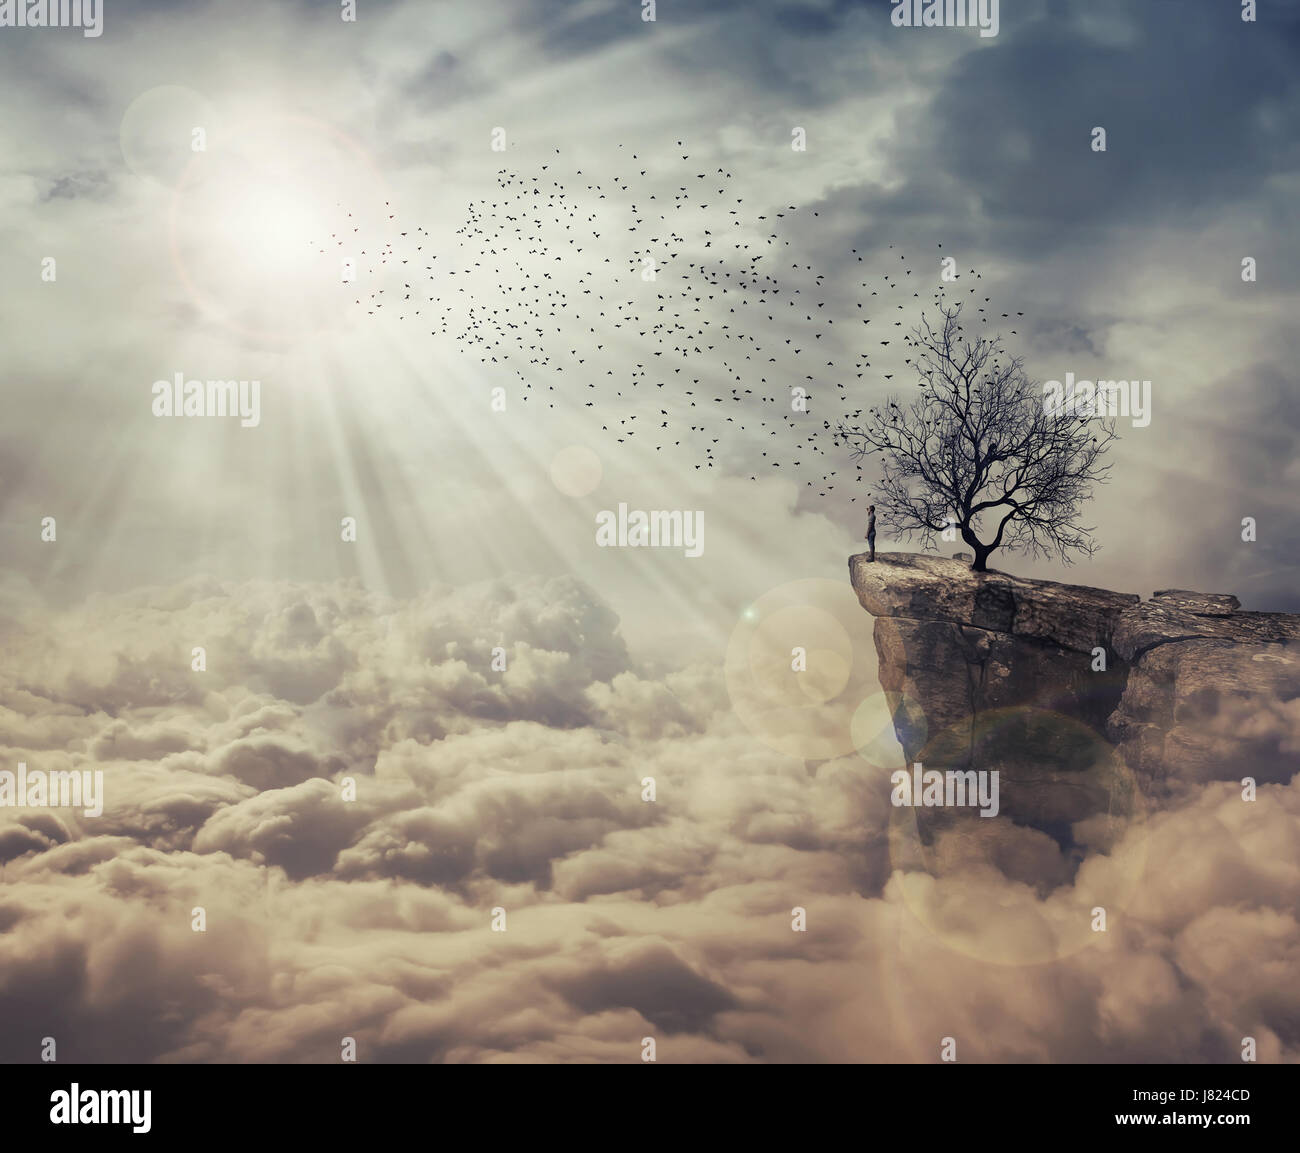 Young man standing on the peak of a cliff over clouds watching at a flock of birds flying from a strange, bare tree. - Stock Image